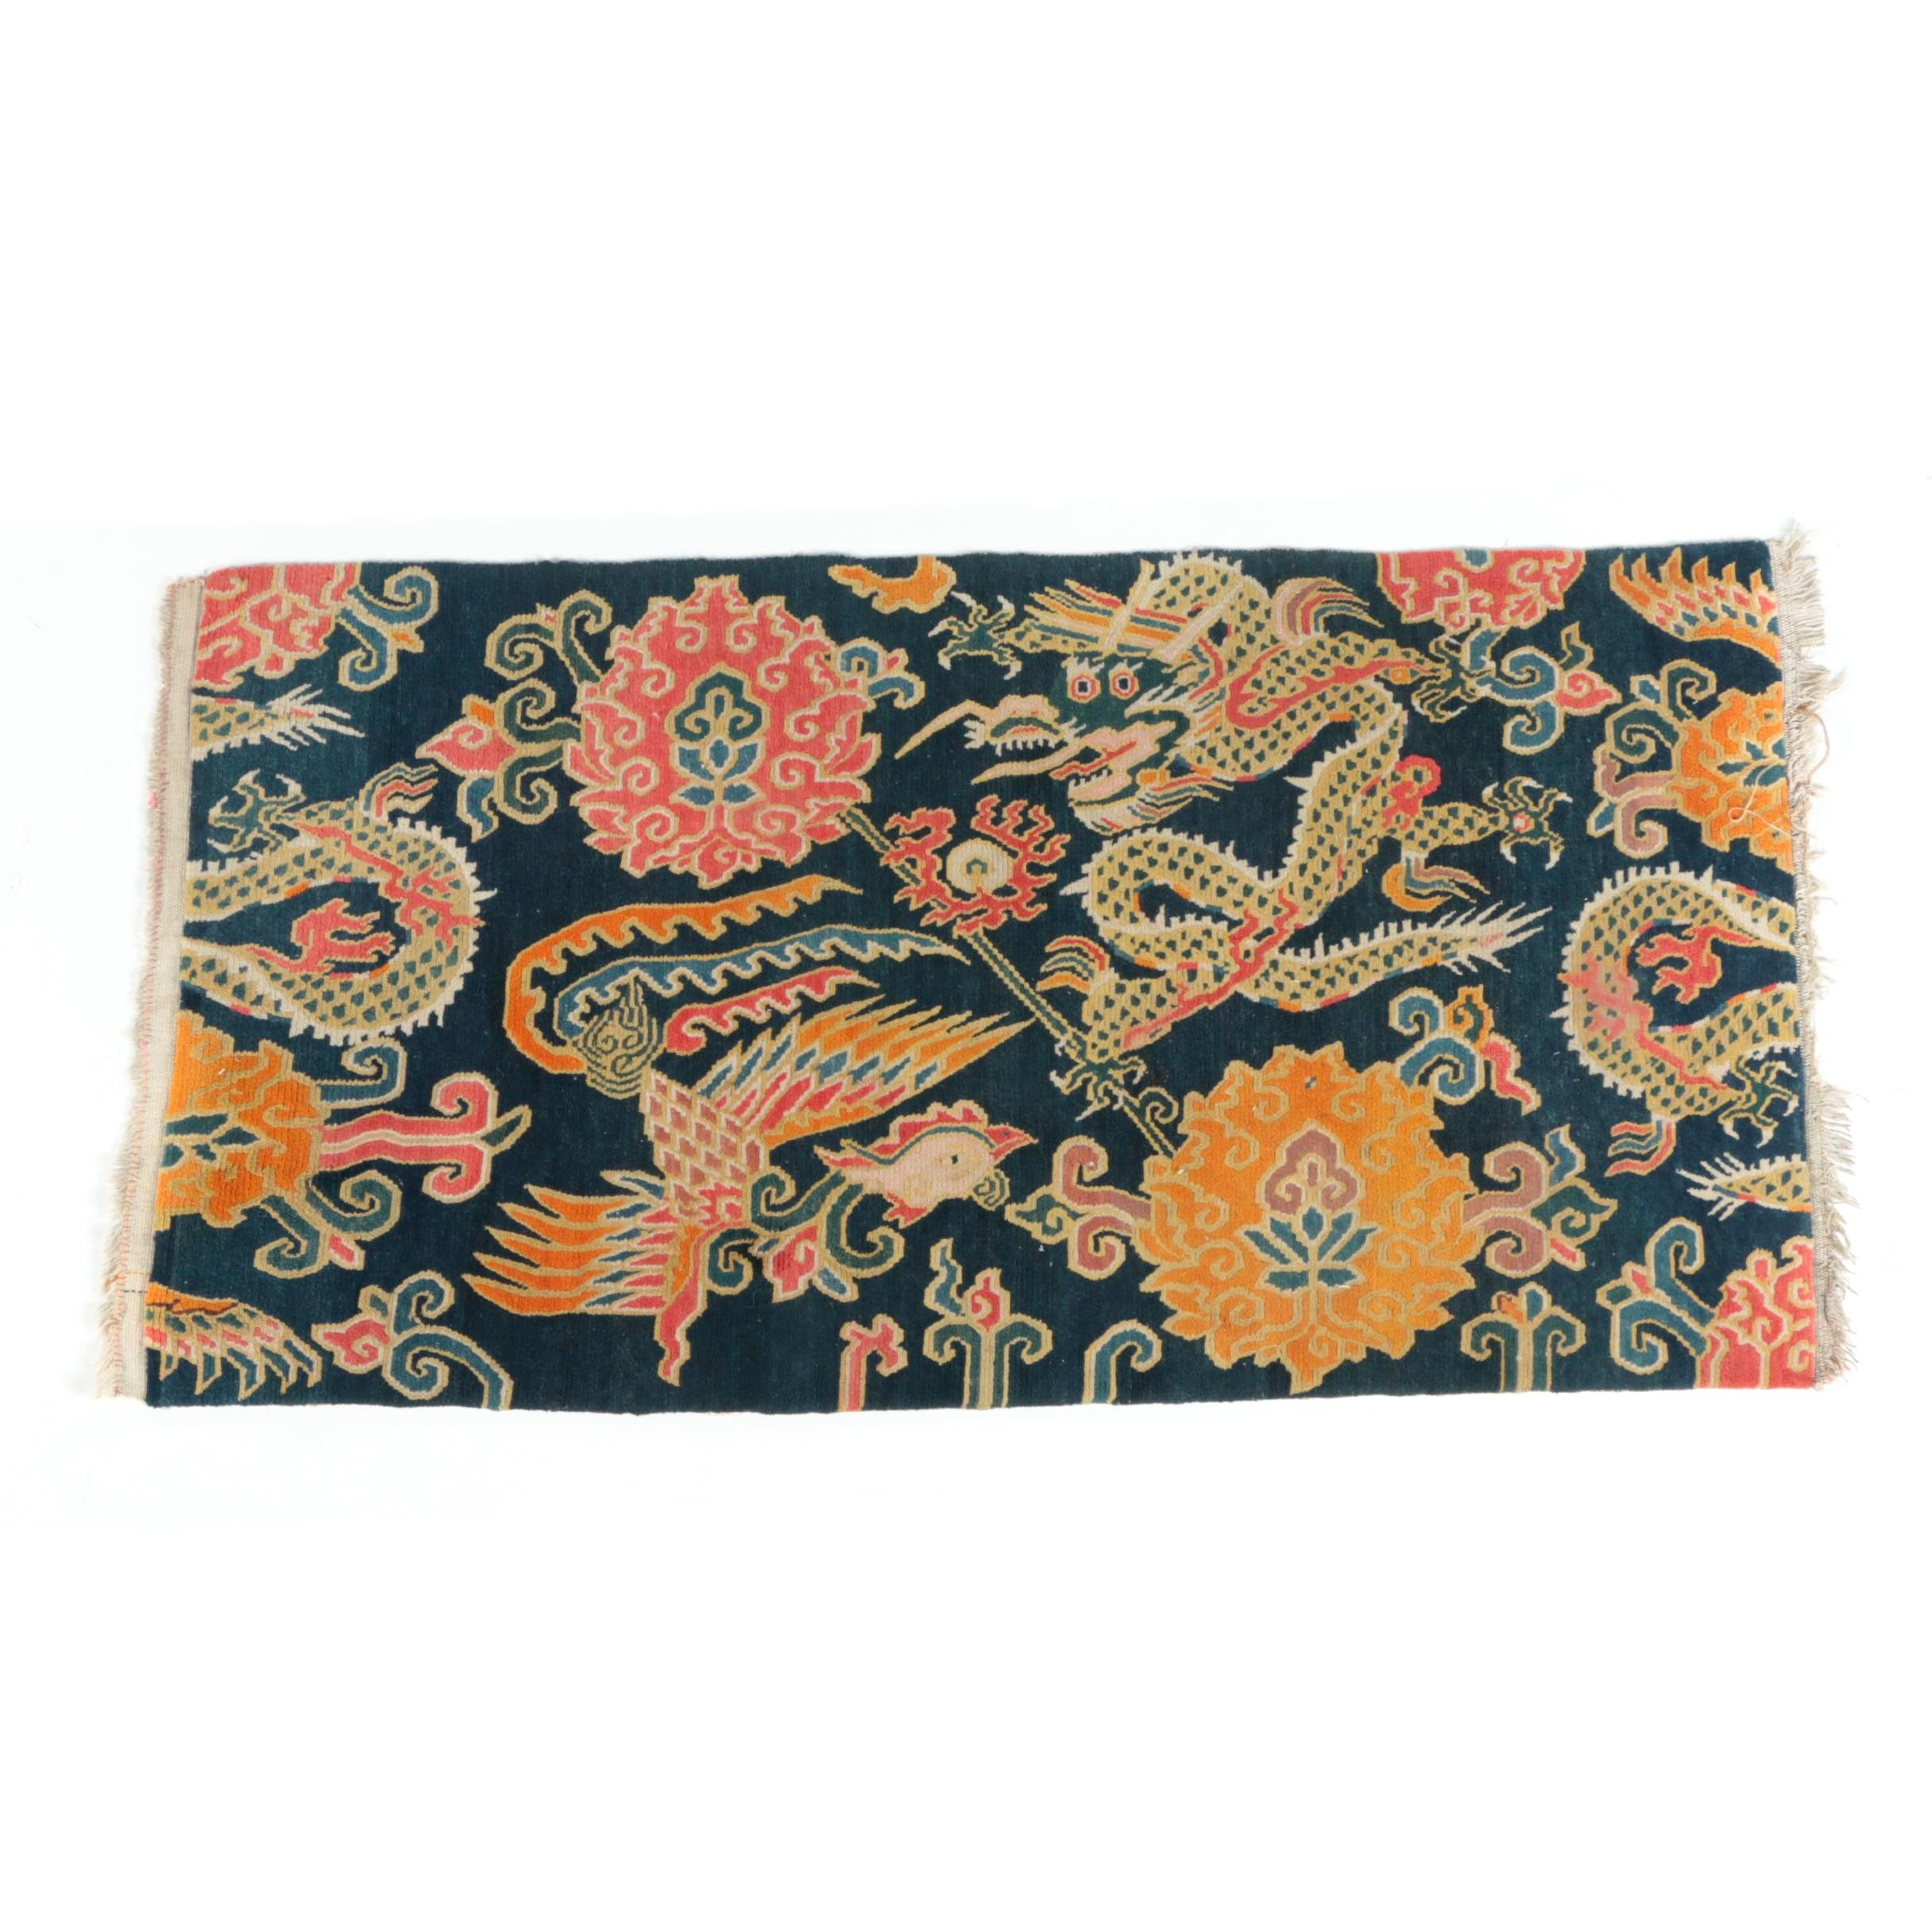 Hand-Knotted Nepalese Wool Accent Rug